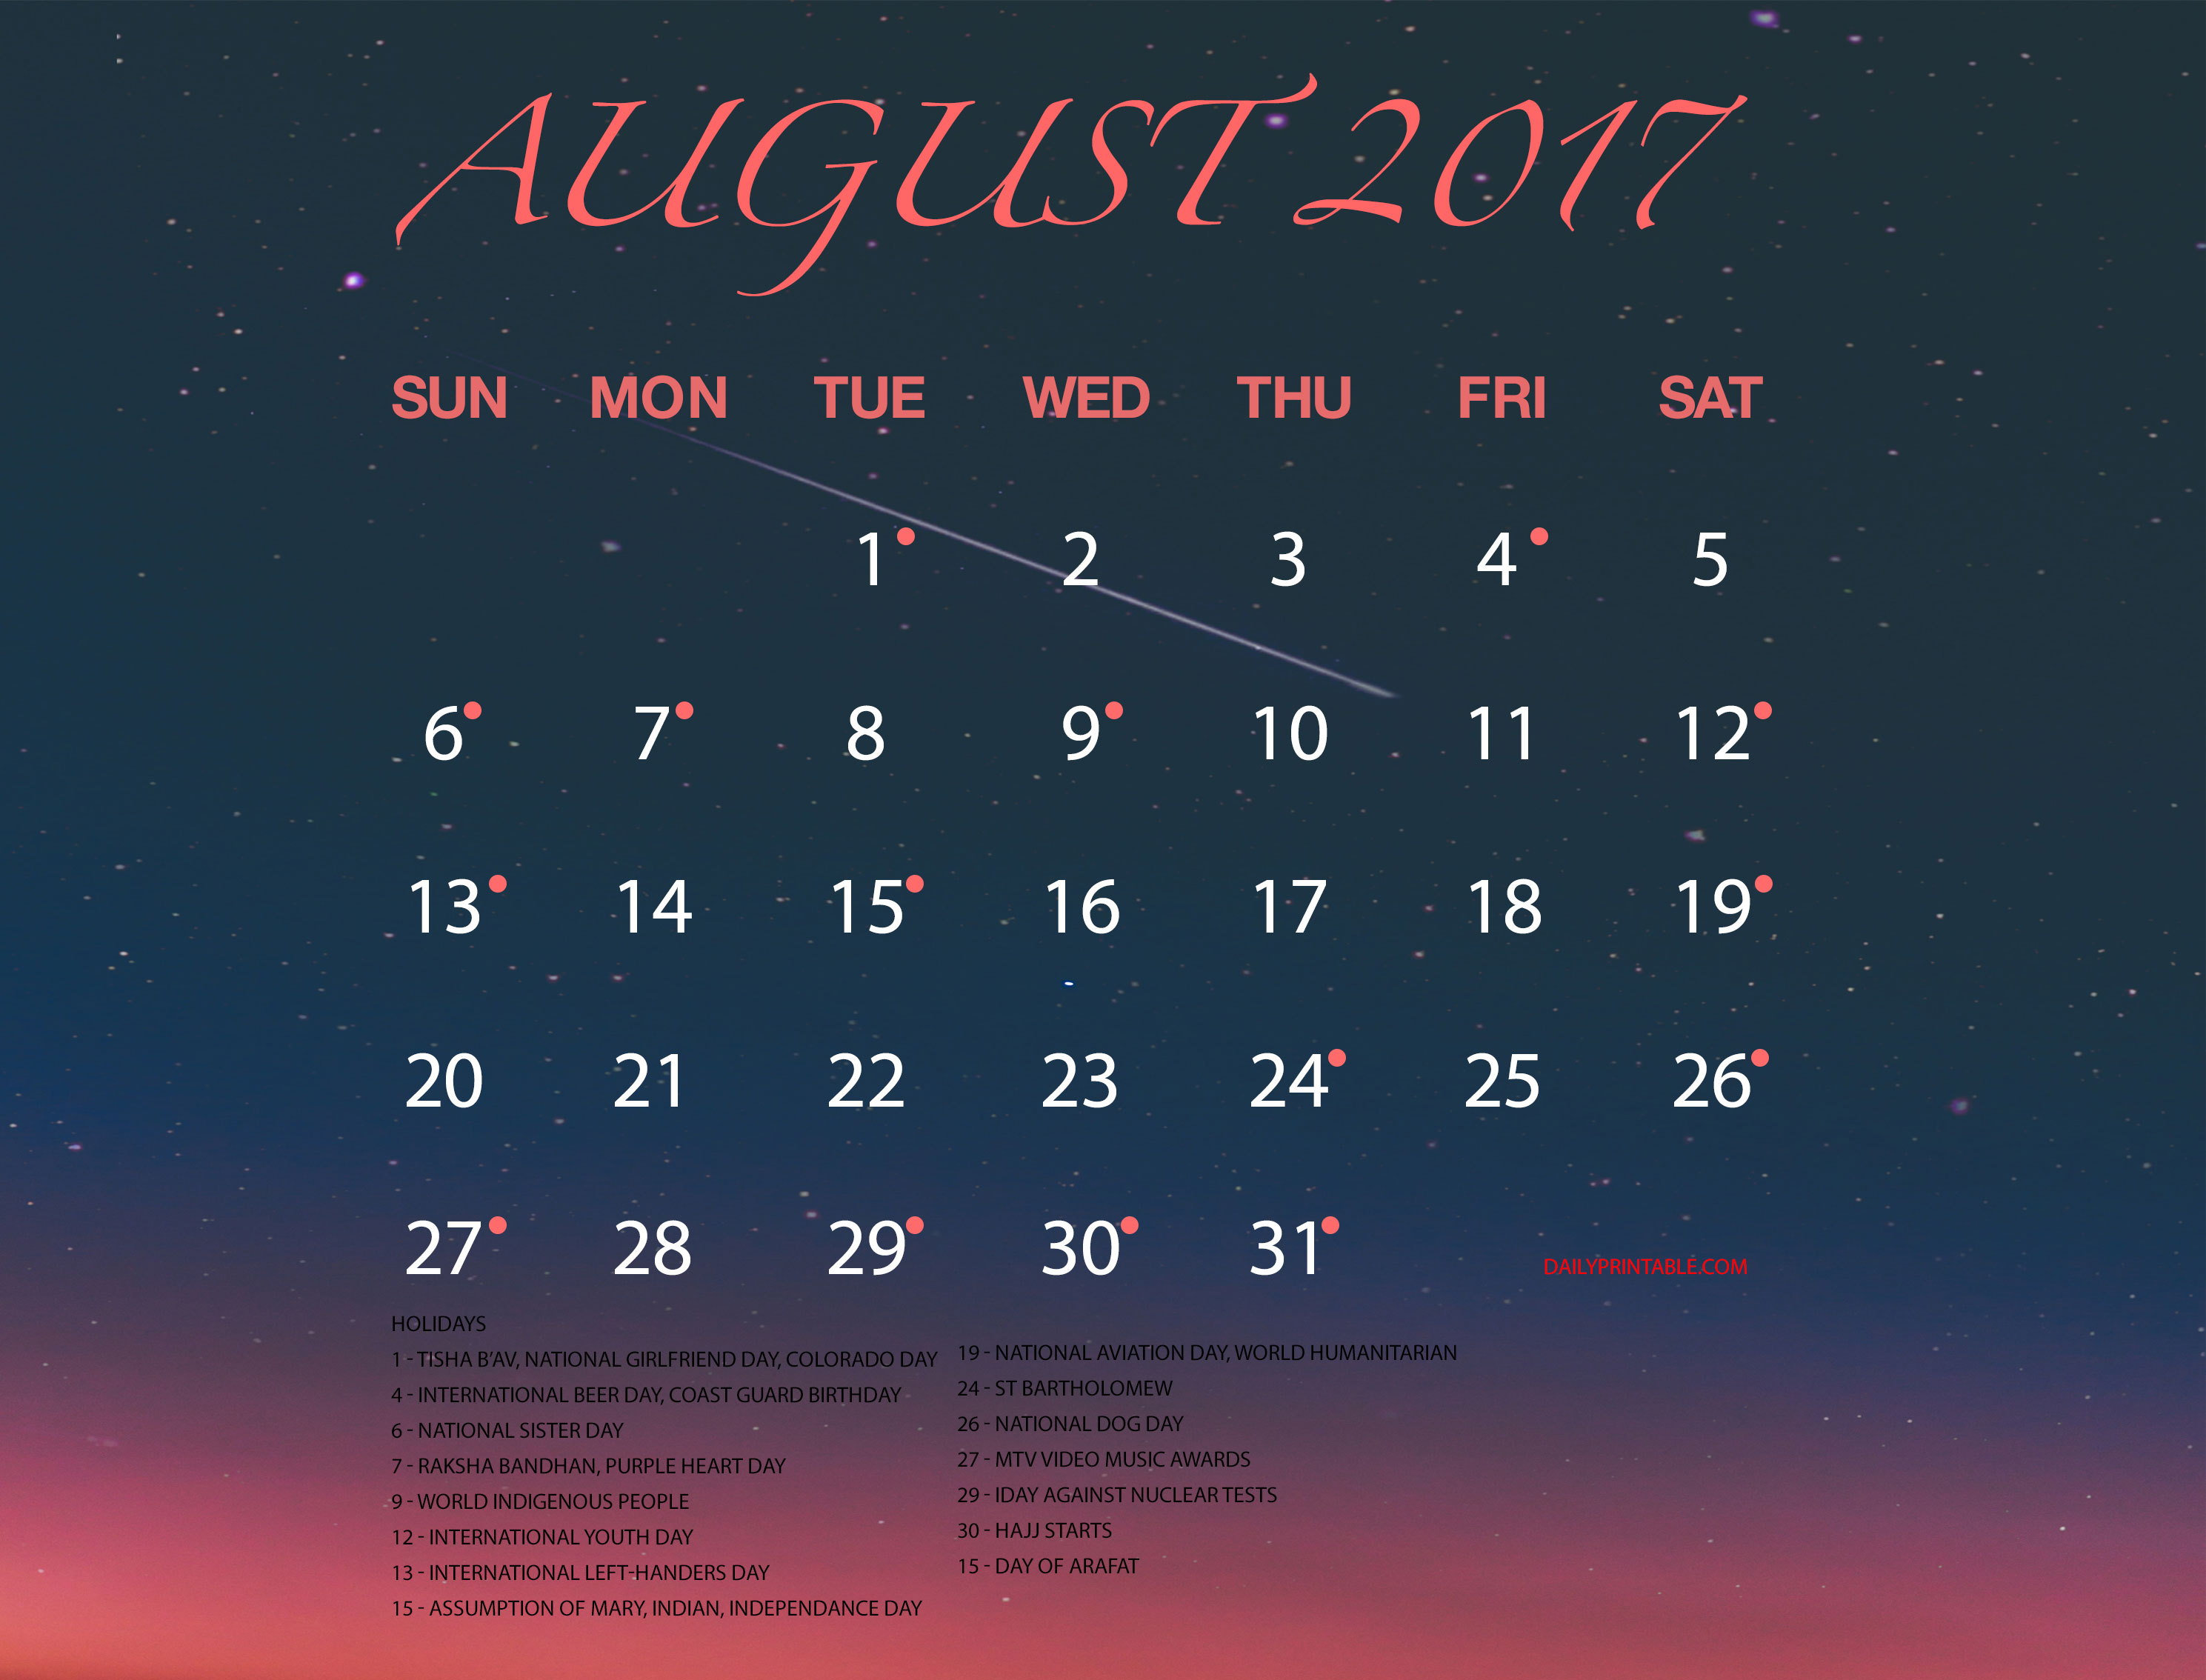 August Calendar 2017 Holidays, August 2017 Calendar Holidays, August 2017 Calendar with Holidays